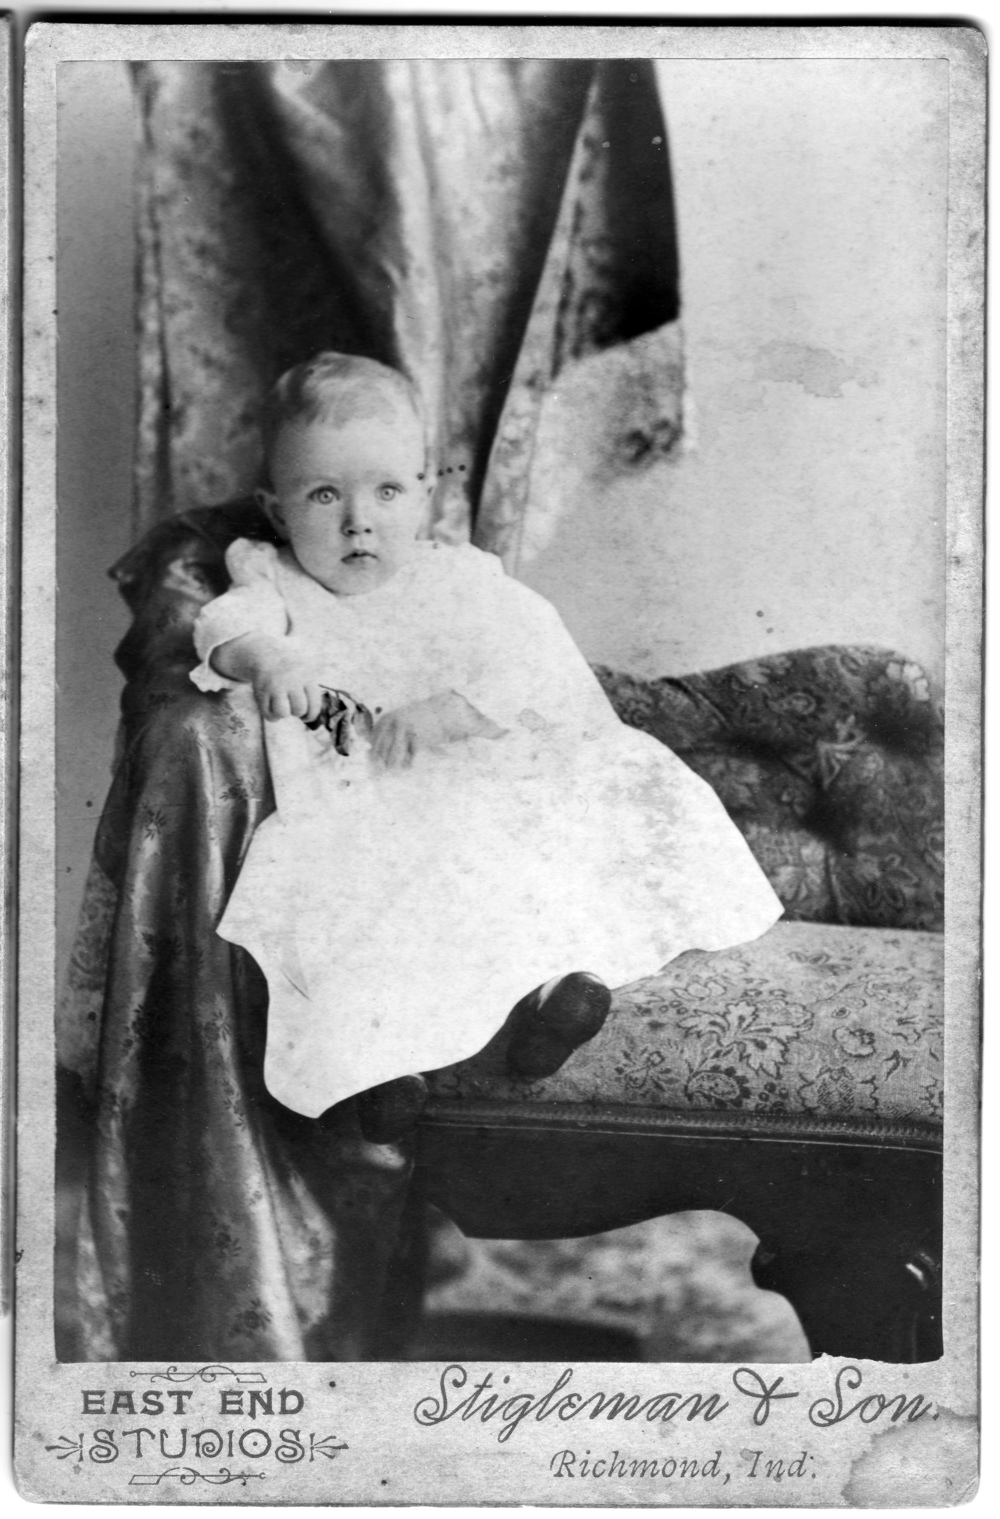 Paul J. Furnas, 11 months old, July 30, 1890